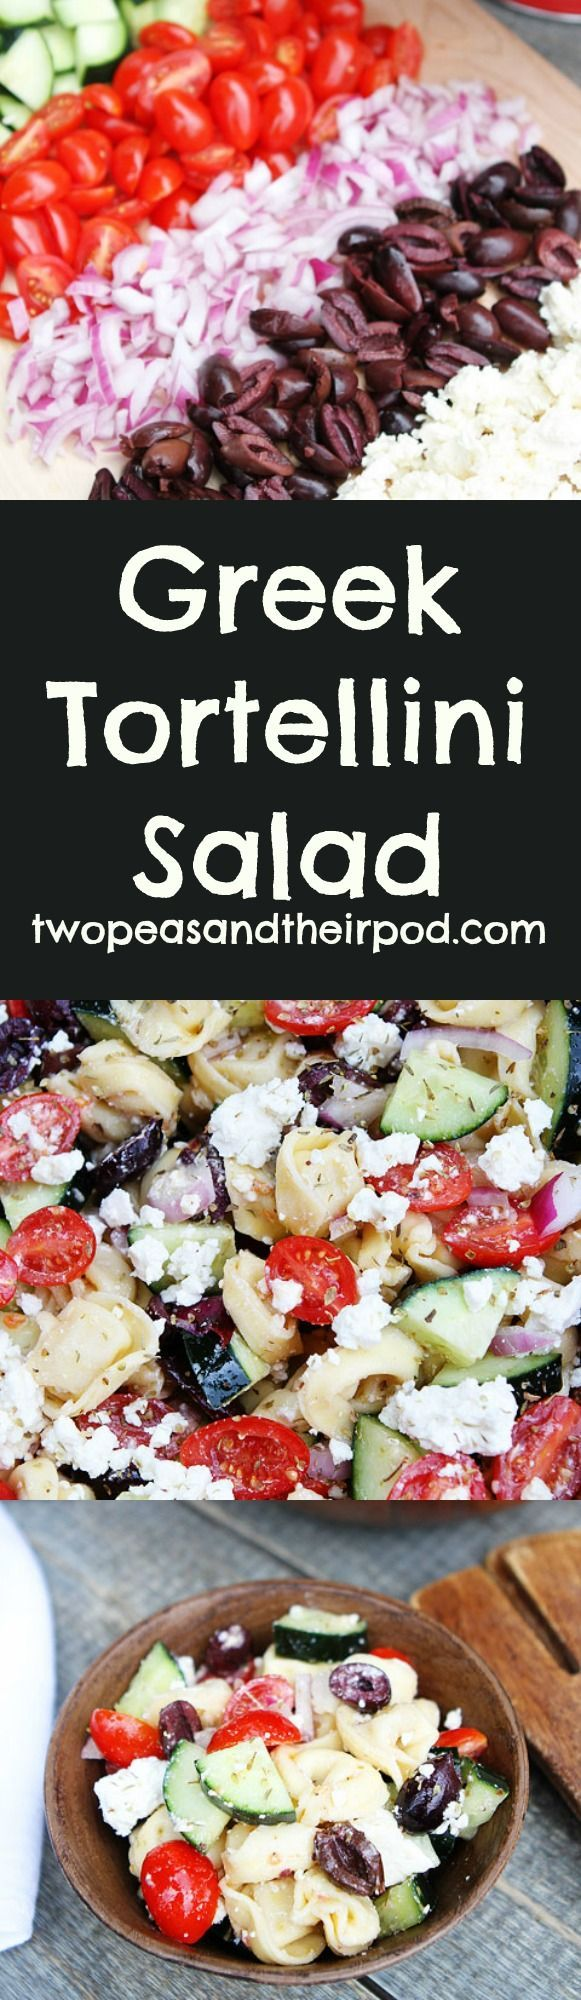 Greek Tortellini Salad Recipe on http://twopeasandtheirpod.com This fresh and easy salad is a family favorite and always a hit at potlucks and BBQ's! Everyone will beg for the recipe!